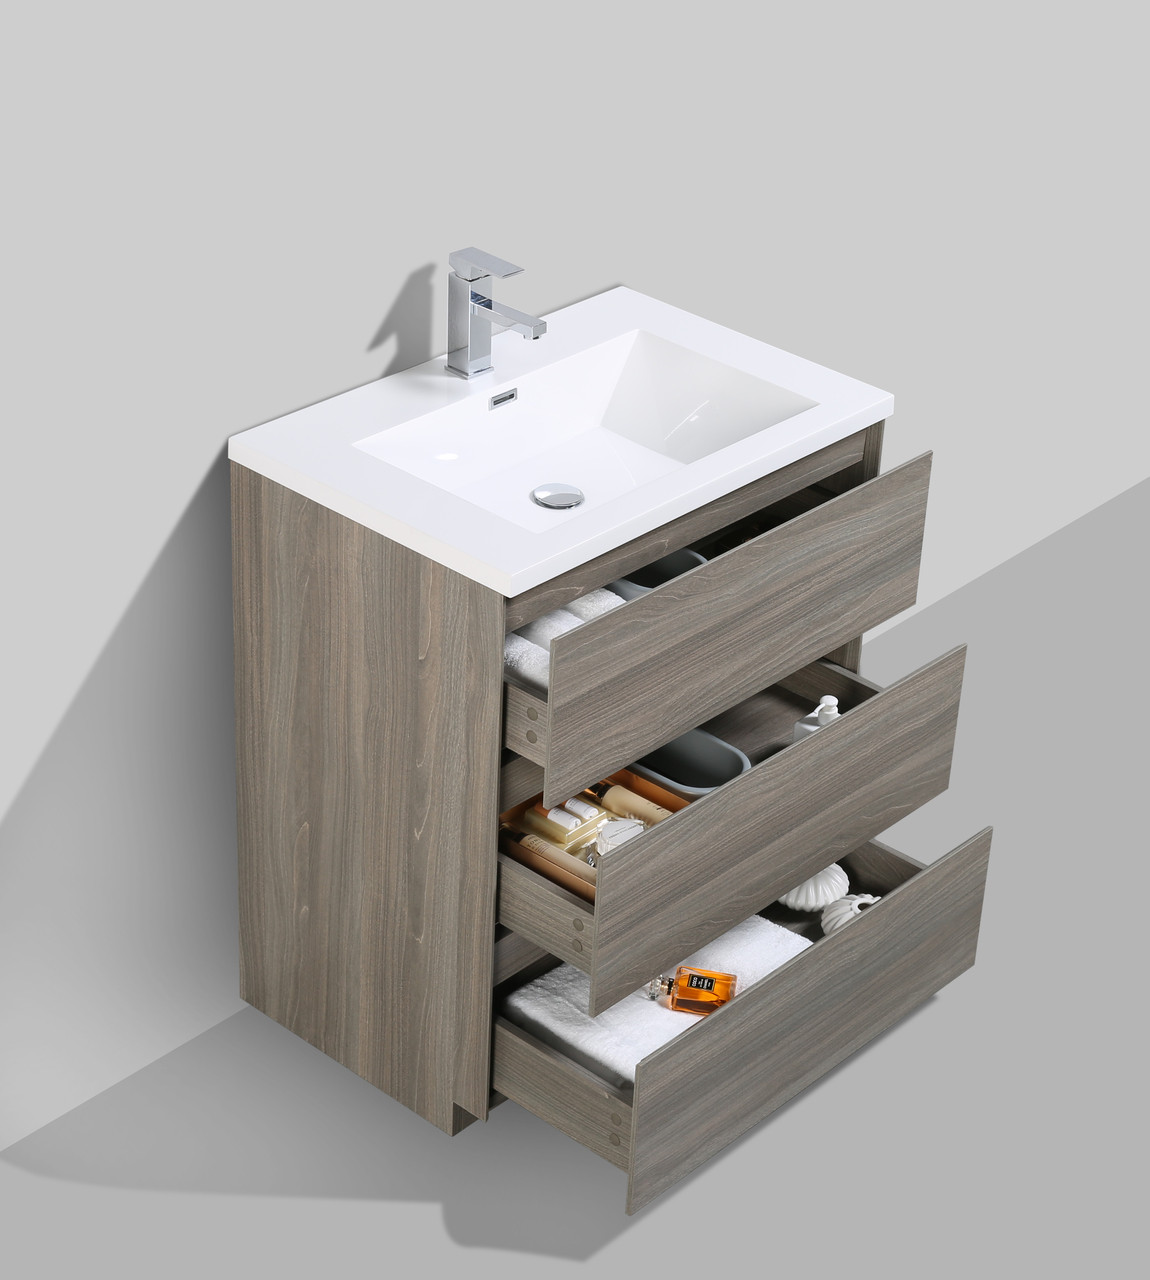 30 Vanity With Drawers Moa 30 Mayple Grey Modern Bathroom Vanity W 3 Drawers And Acrylic Sink